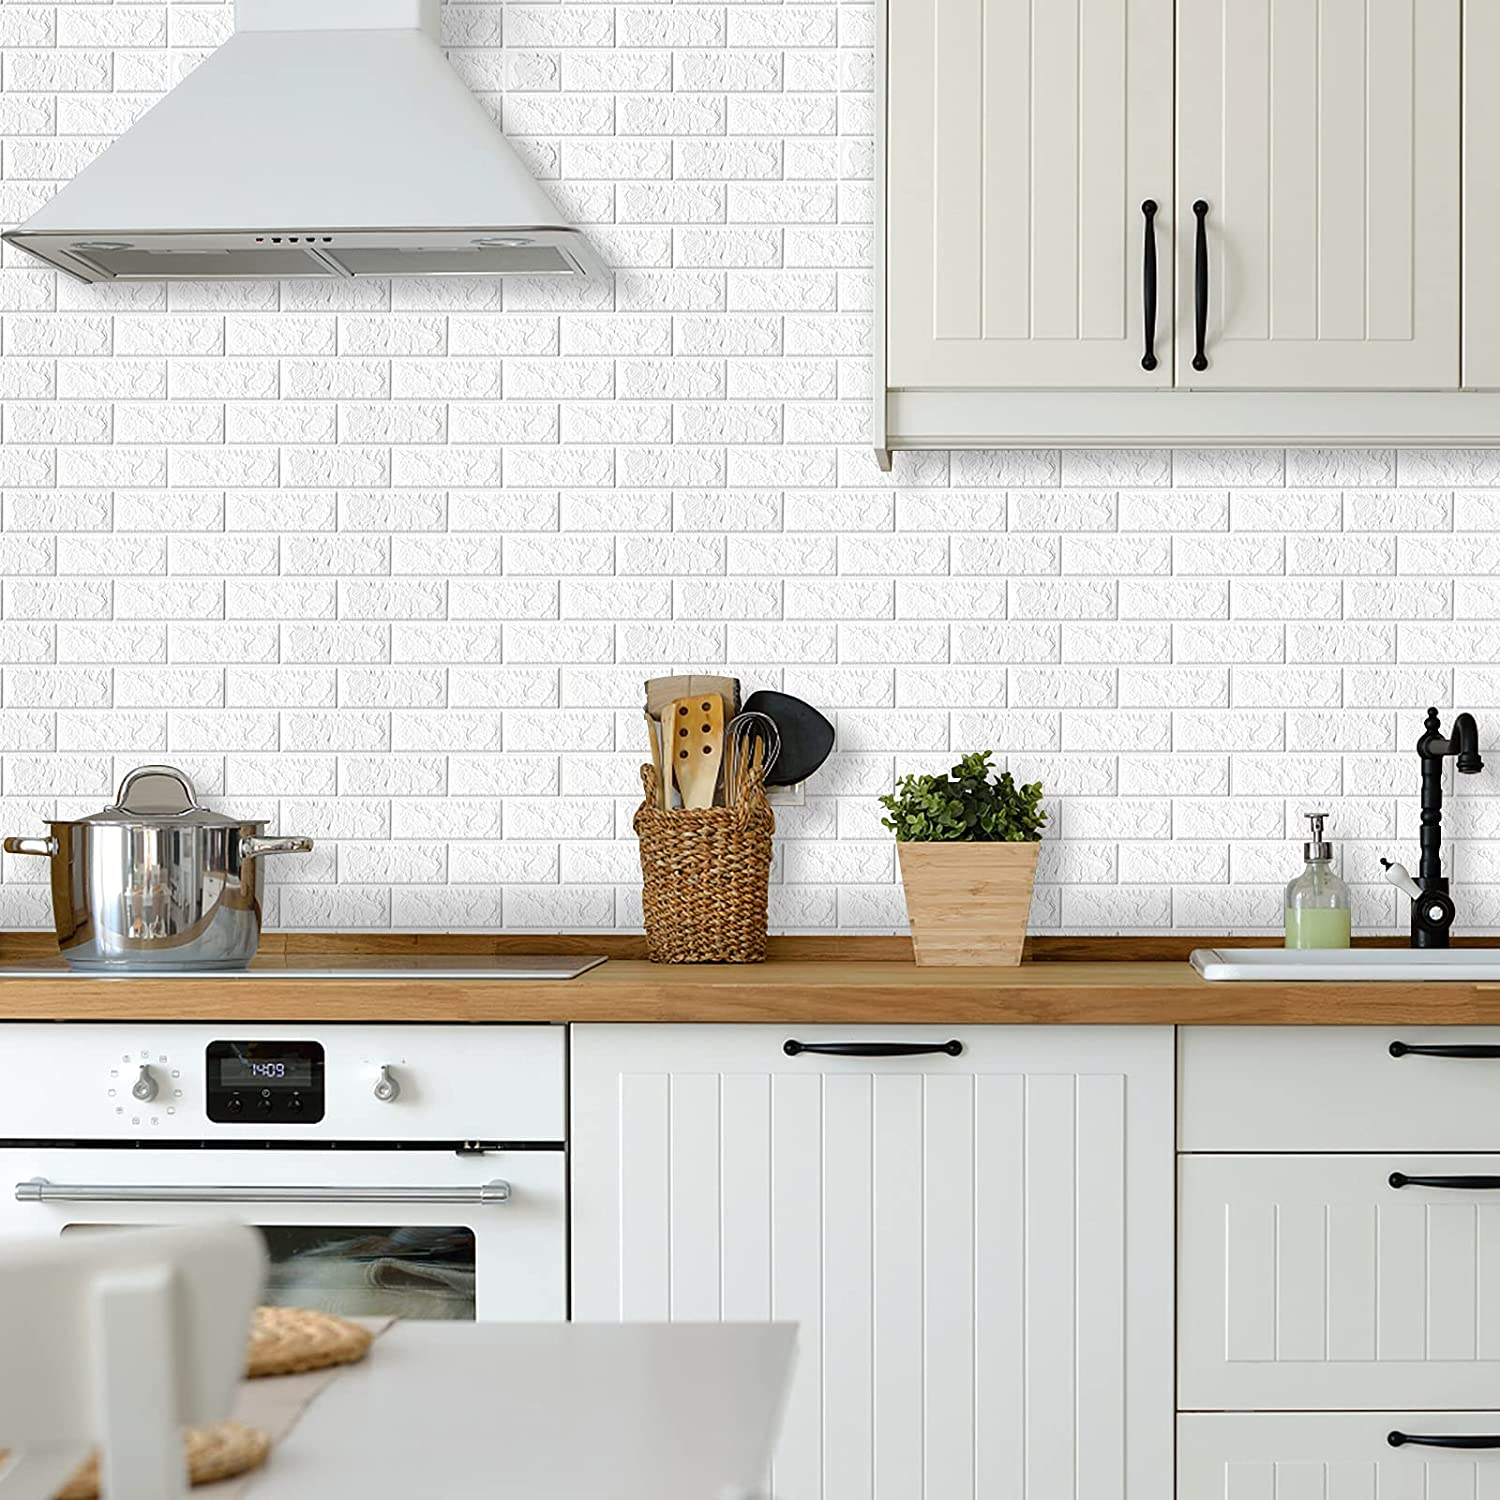 Buy Mecpar White 3d Brick Wall Panels 10 Pack Faux Brick Panels Peel And Stick Self Adhesive Waterproof Pe Foam Tile Wallpaper For Living Room Bedroom Background Kitchen Wall Decoration Cover 58sq Ft Online In